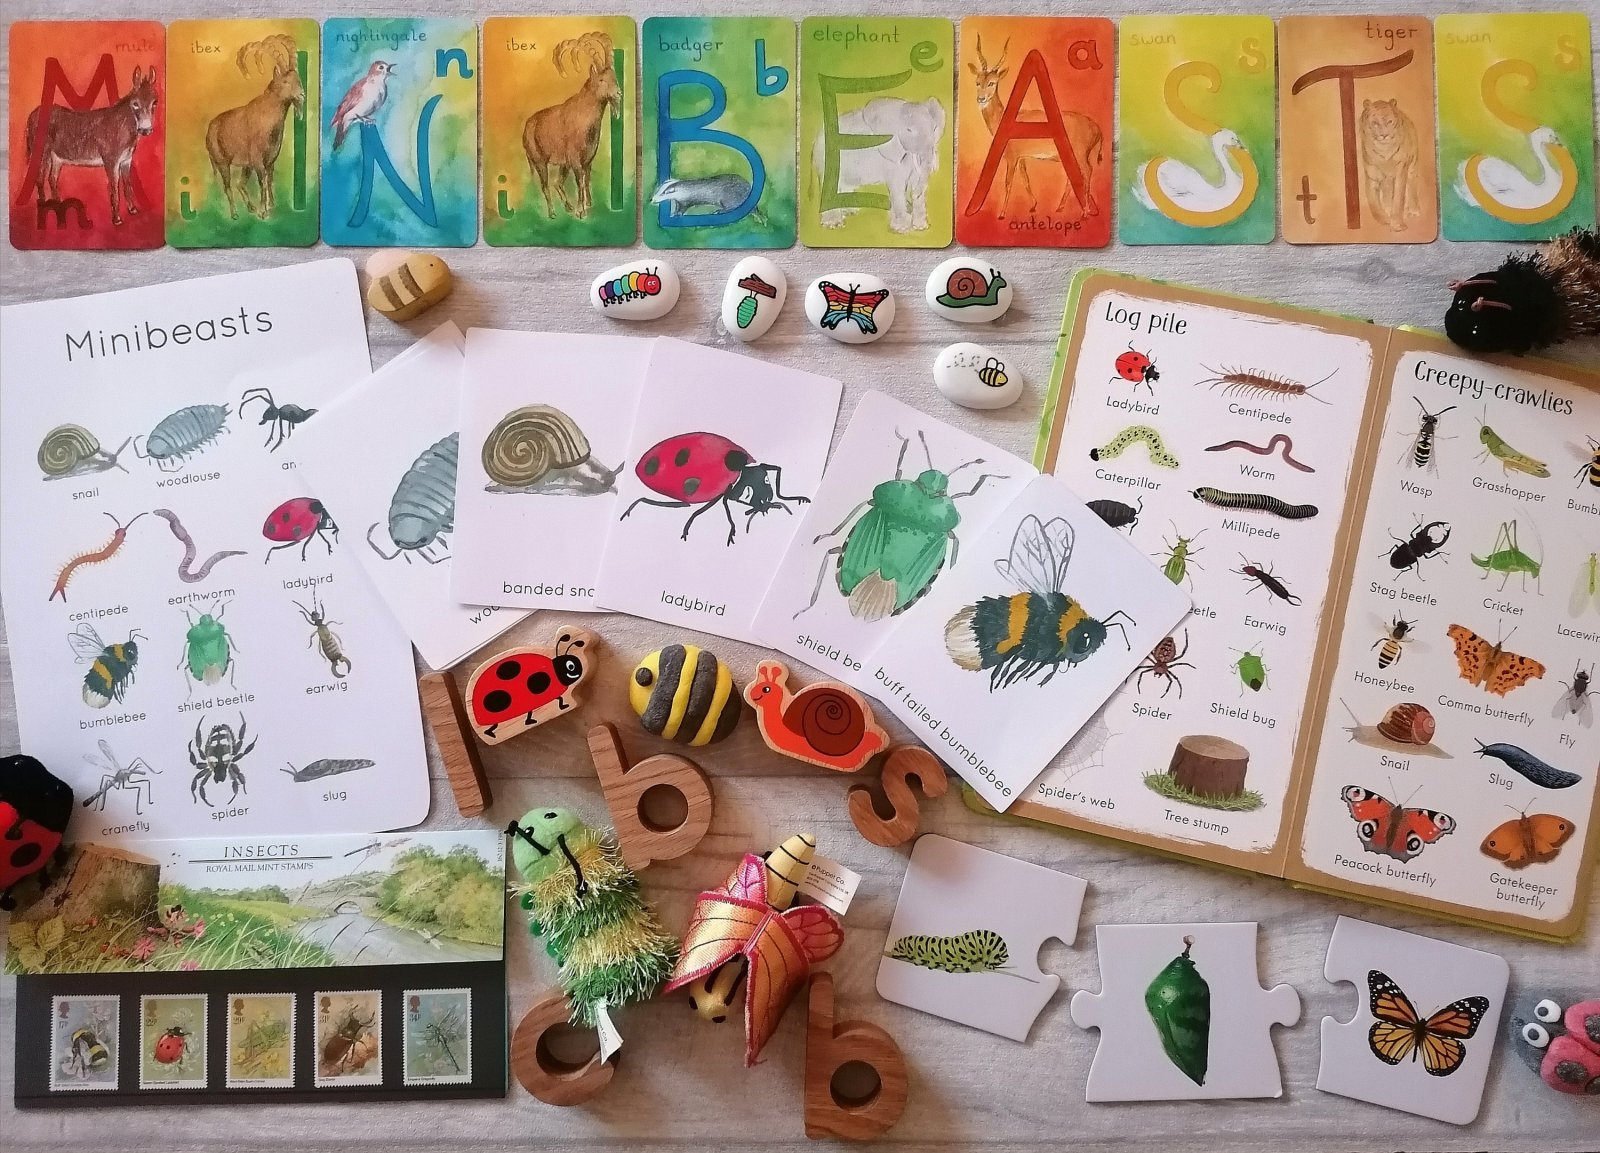 Selection of minibeast resources for nature exploring